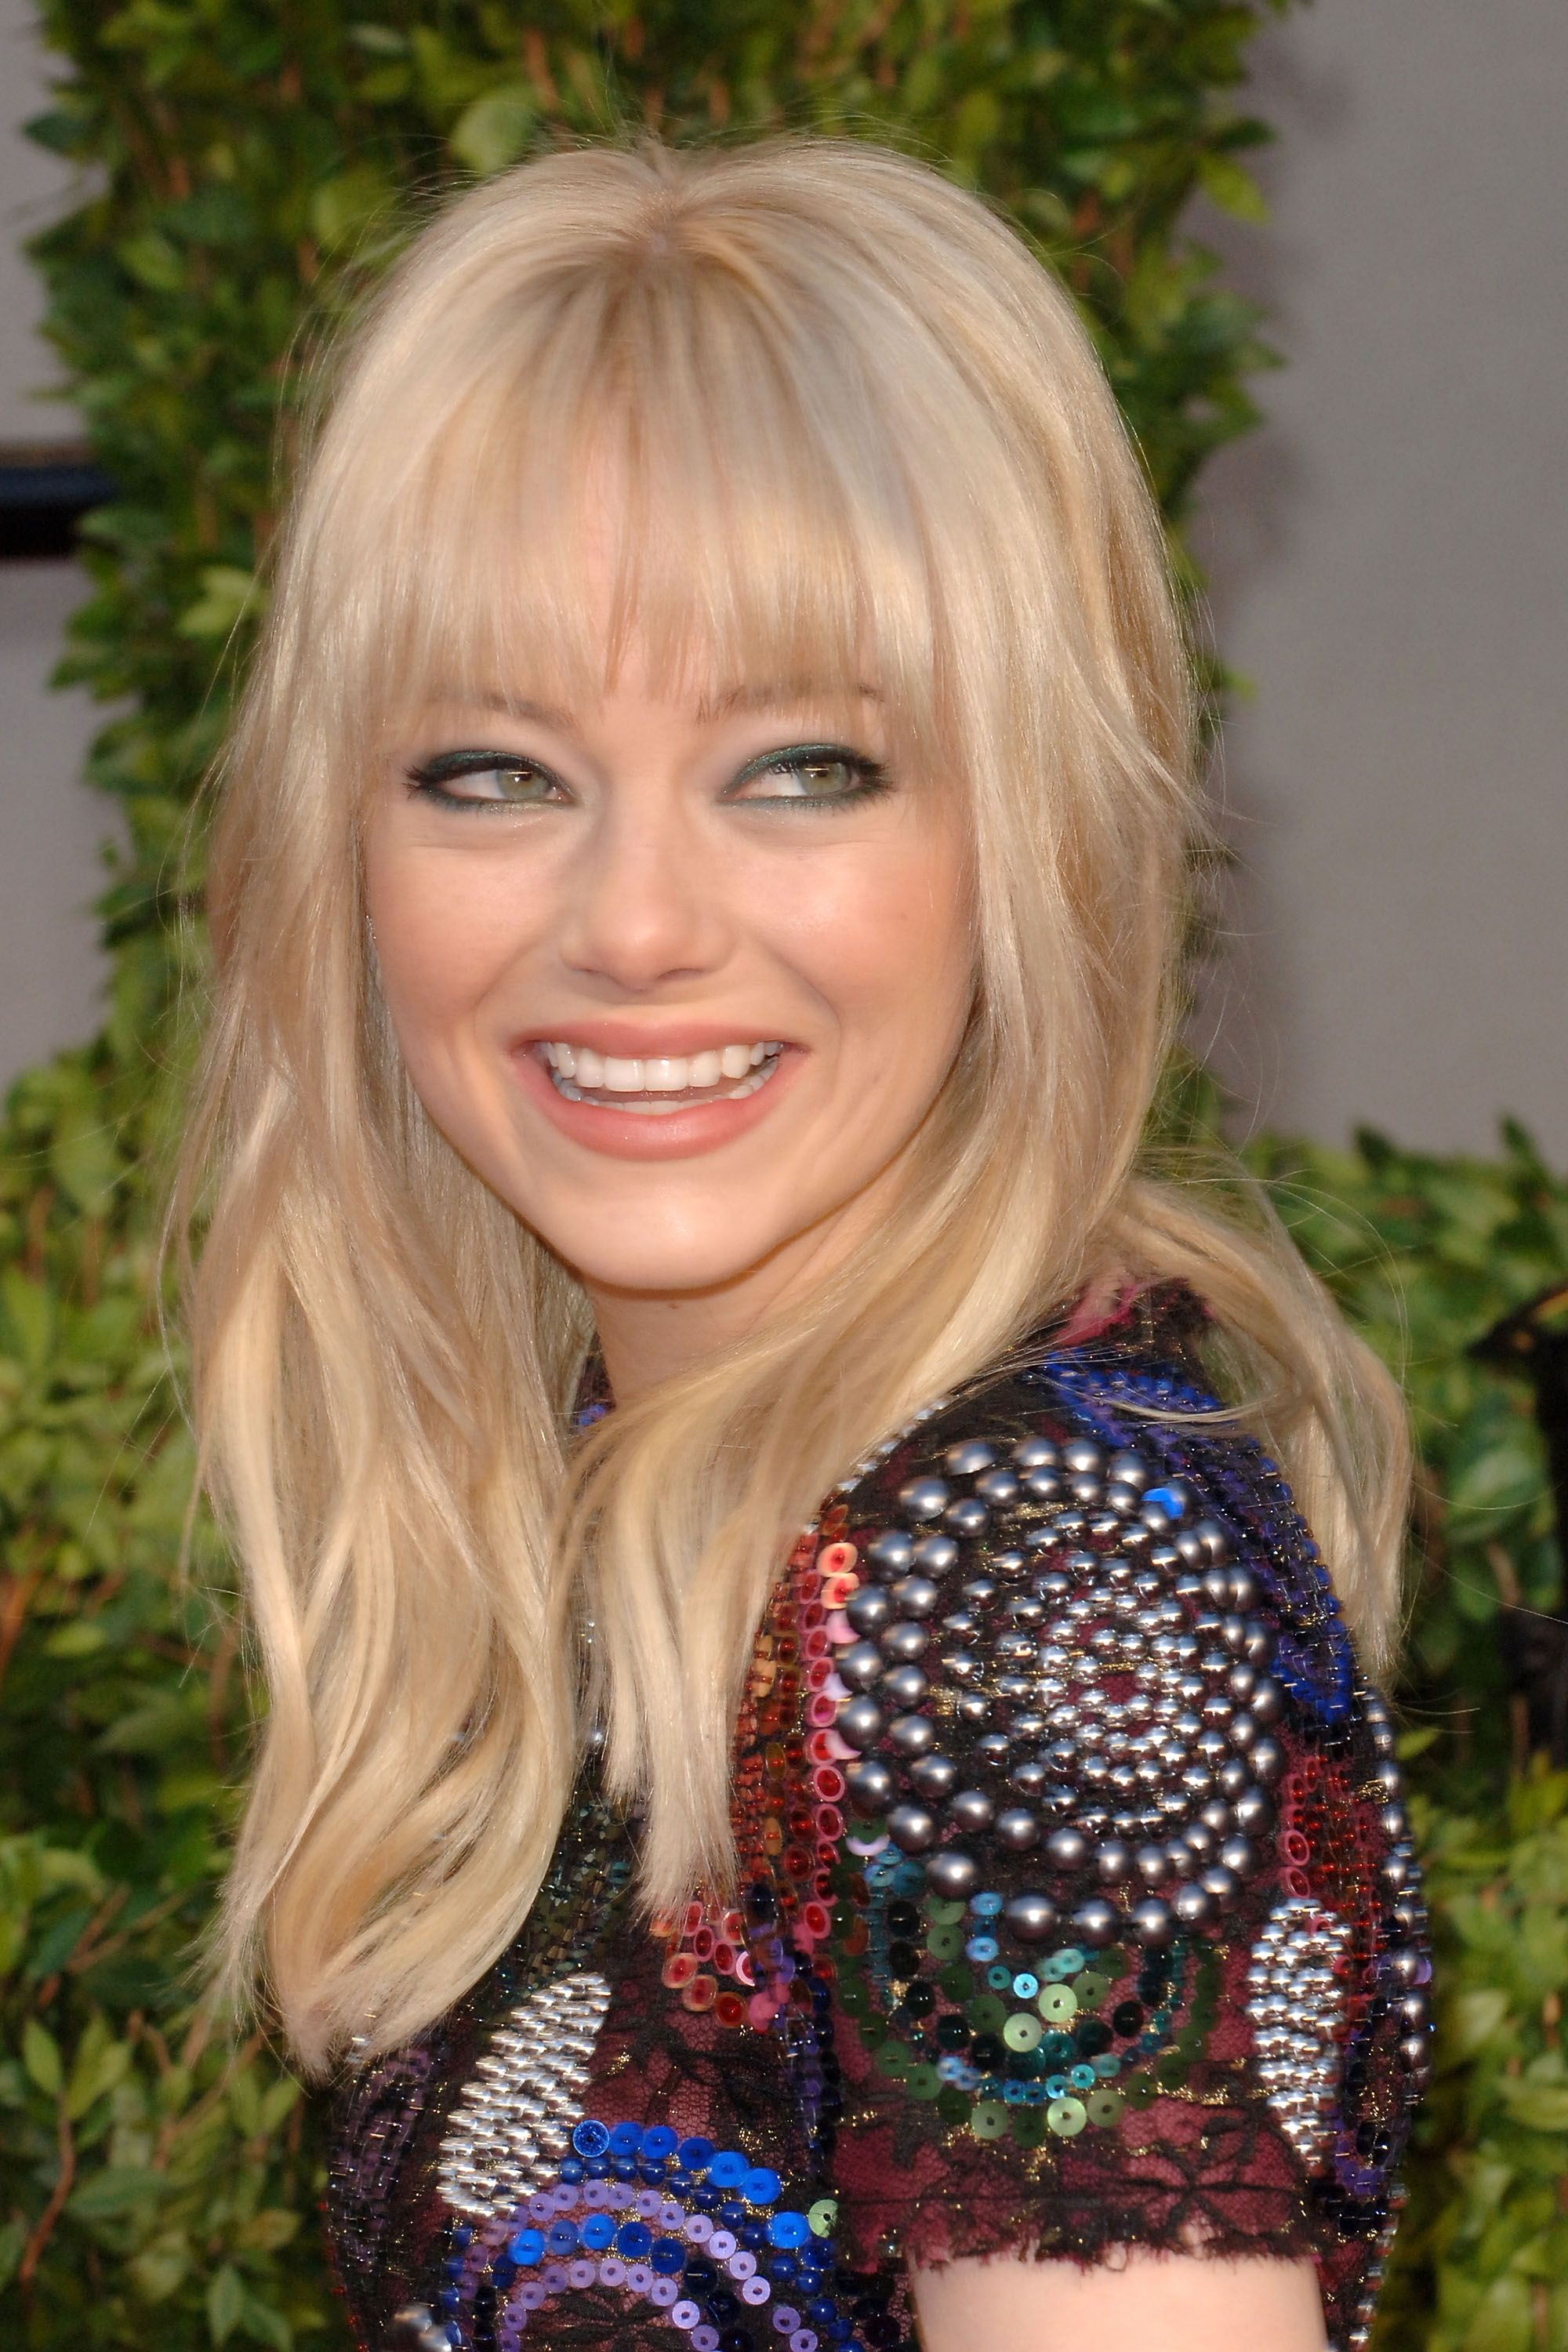 pin by emily carr on hair flare! | pinterest | emma stone hair